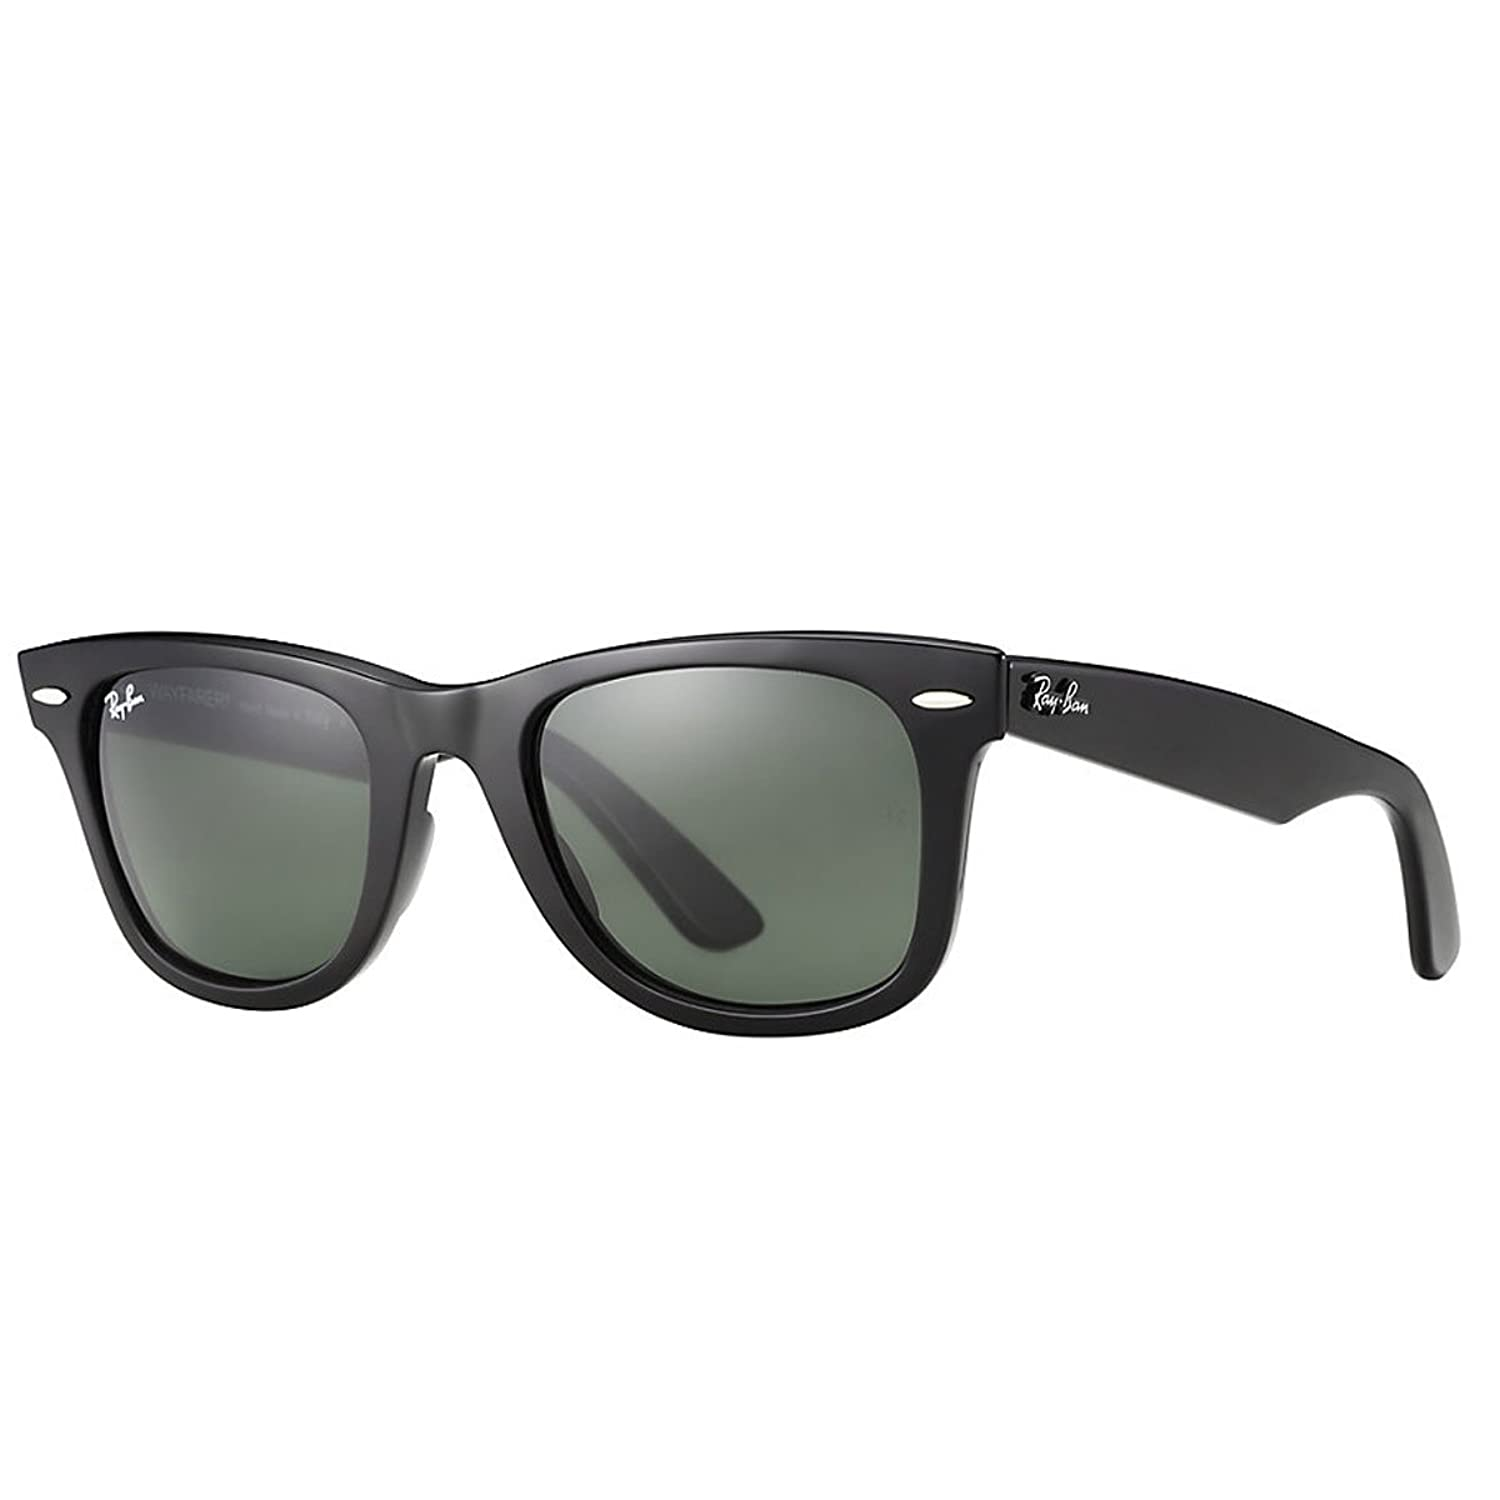 ray ban classic wayfarer sunglasses sale  ray ban rb2140 original wayfarer sunglasses